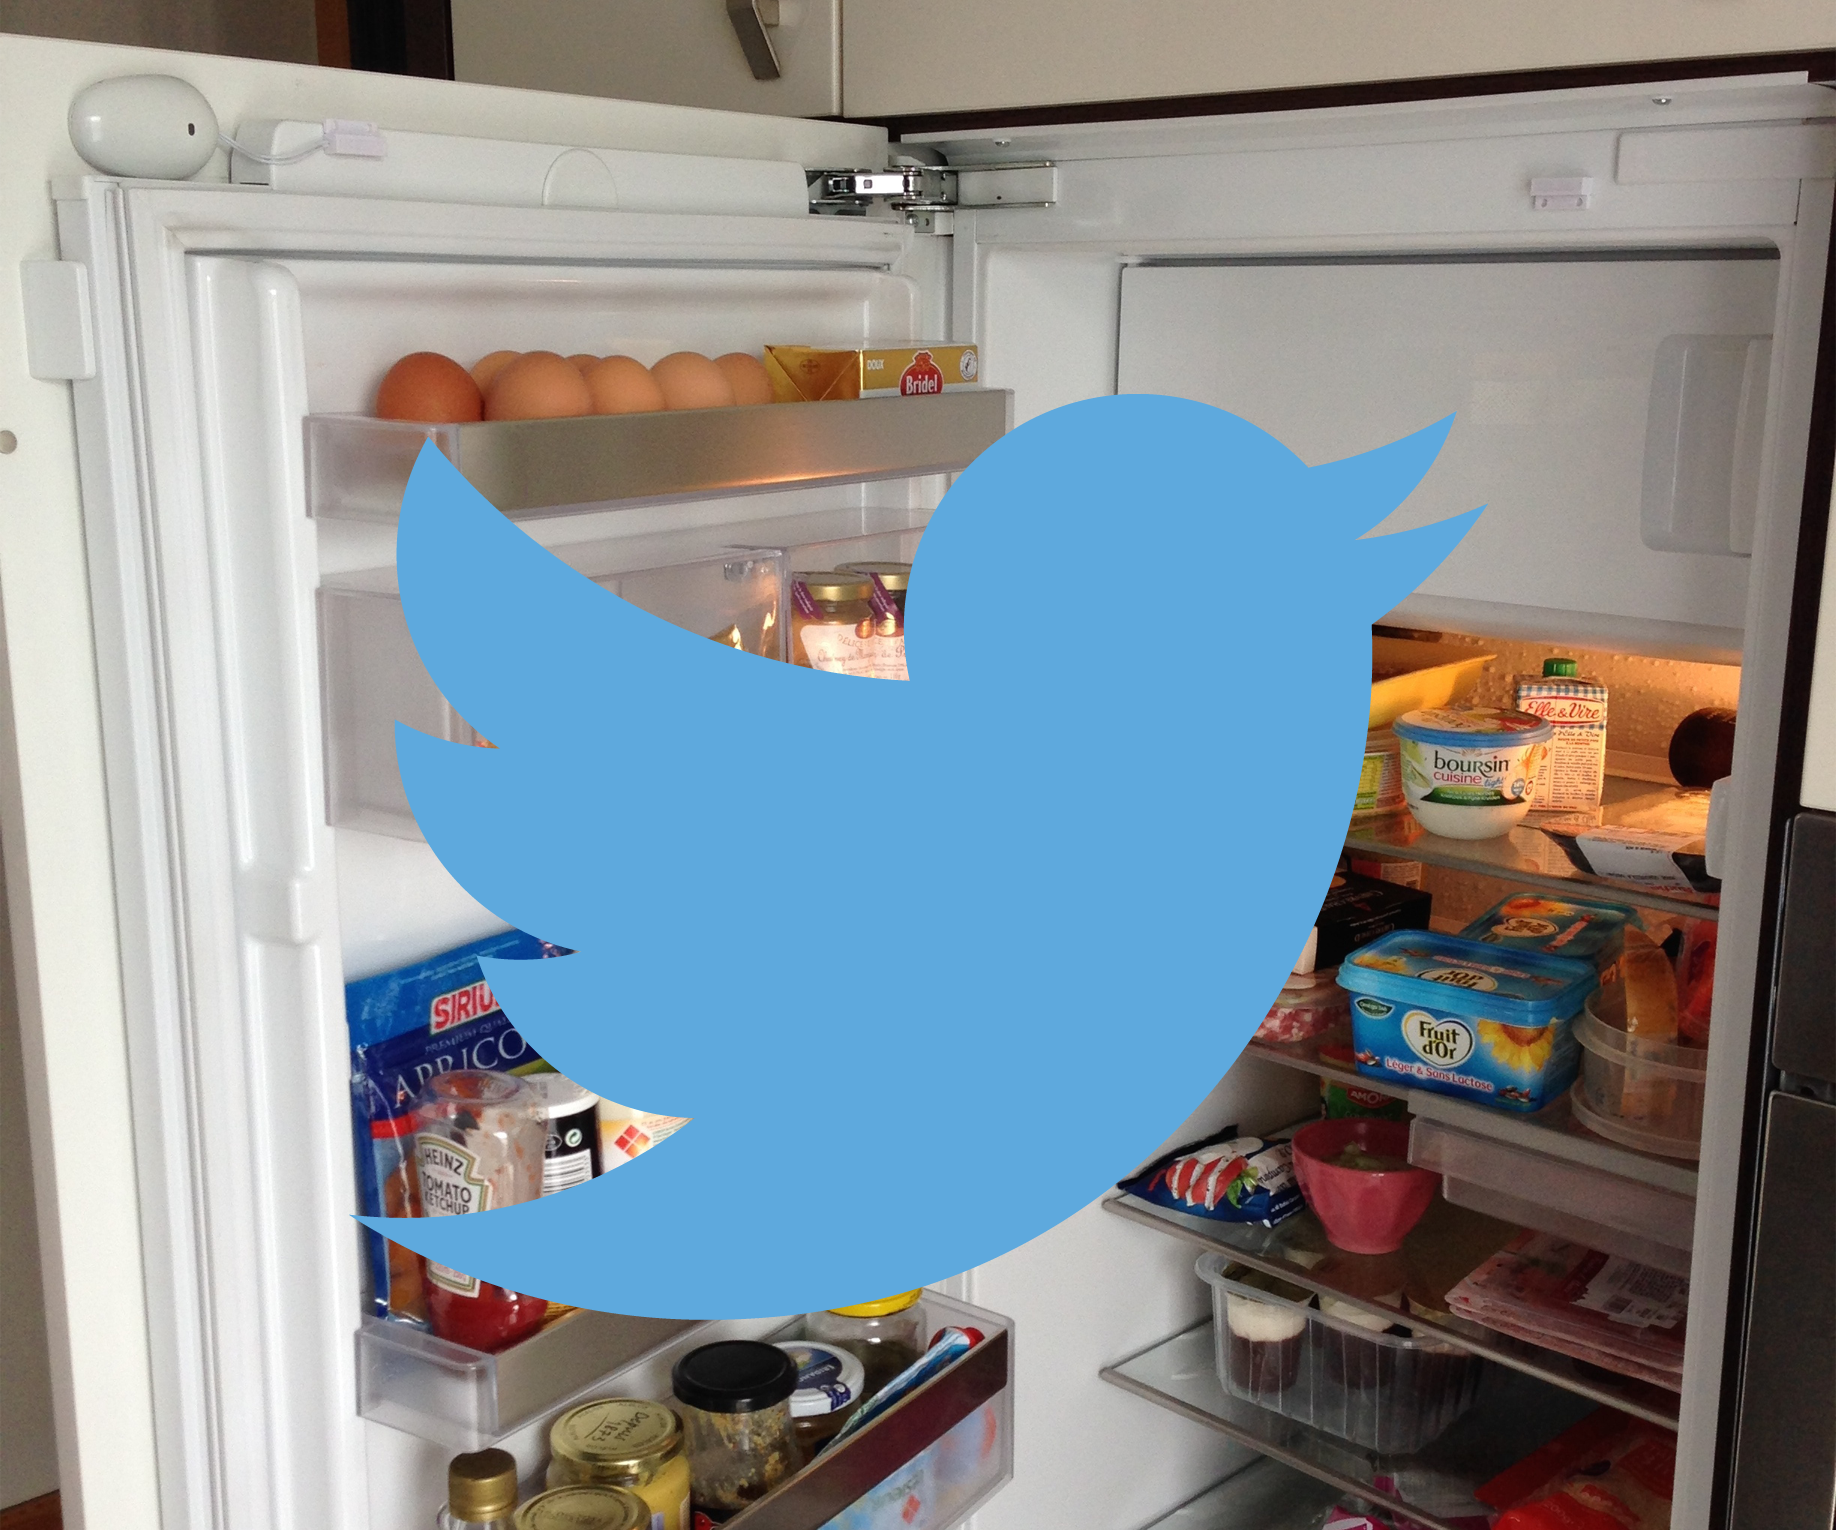 Connect your fridge to Twitter